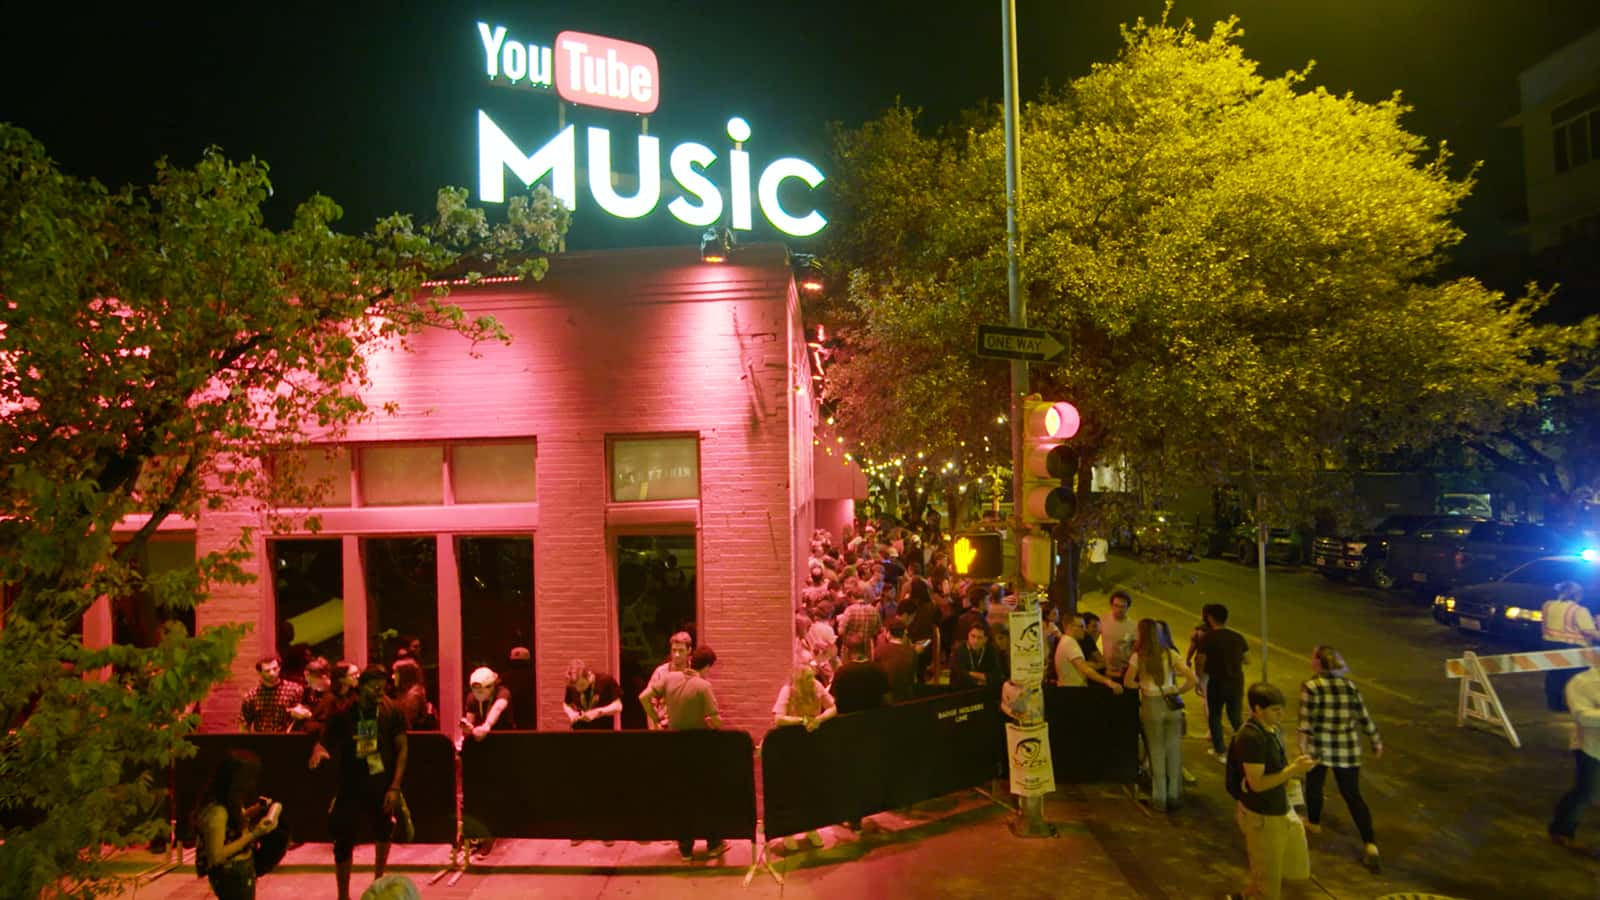 The entrance of the YouTube Music Insights Data Visualizer experience at SWSW 2016.